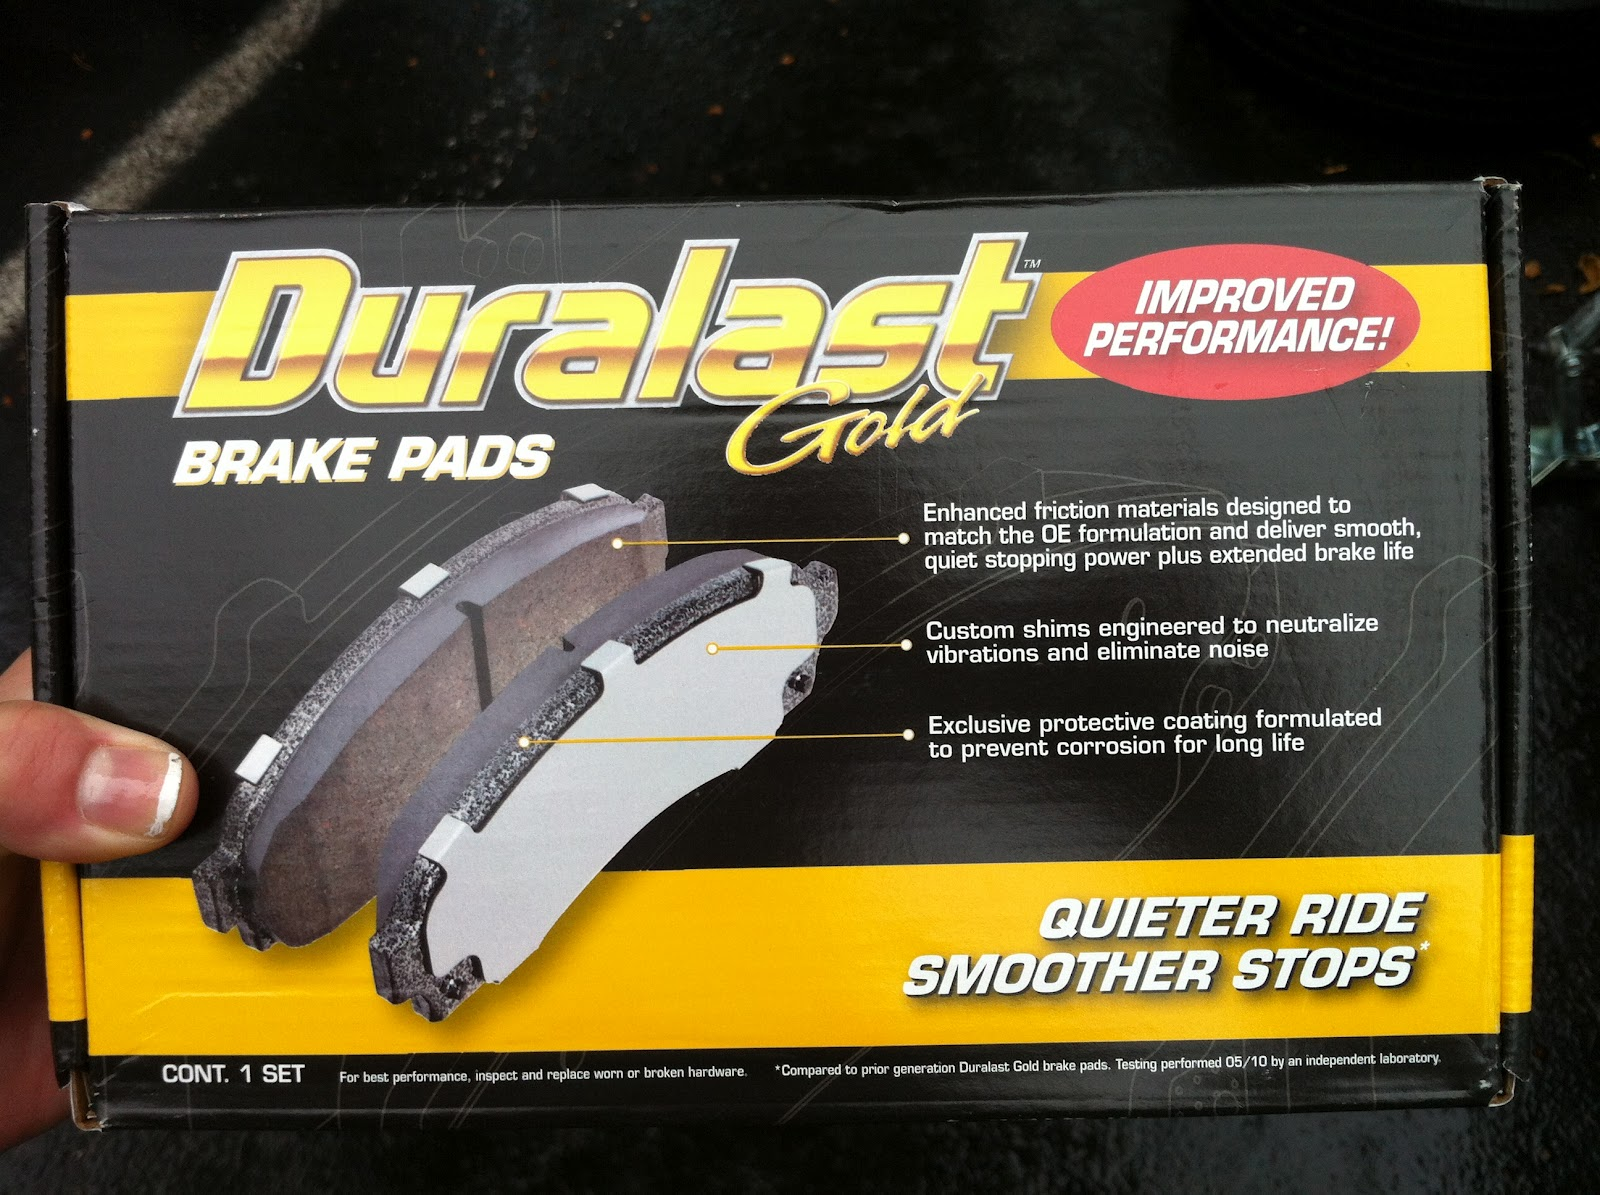 Rhymes With Laundry How To Change Your Brake Pads When Step 1 Buy New From Local Auto Parts Store